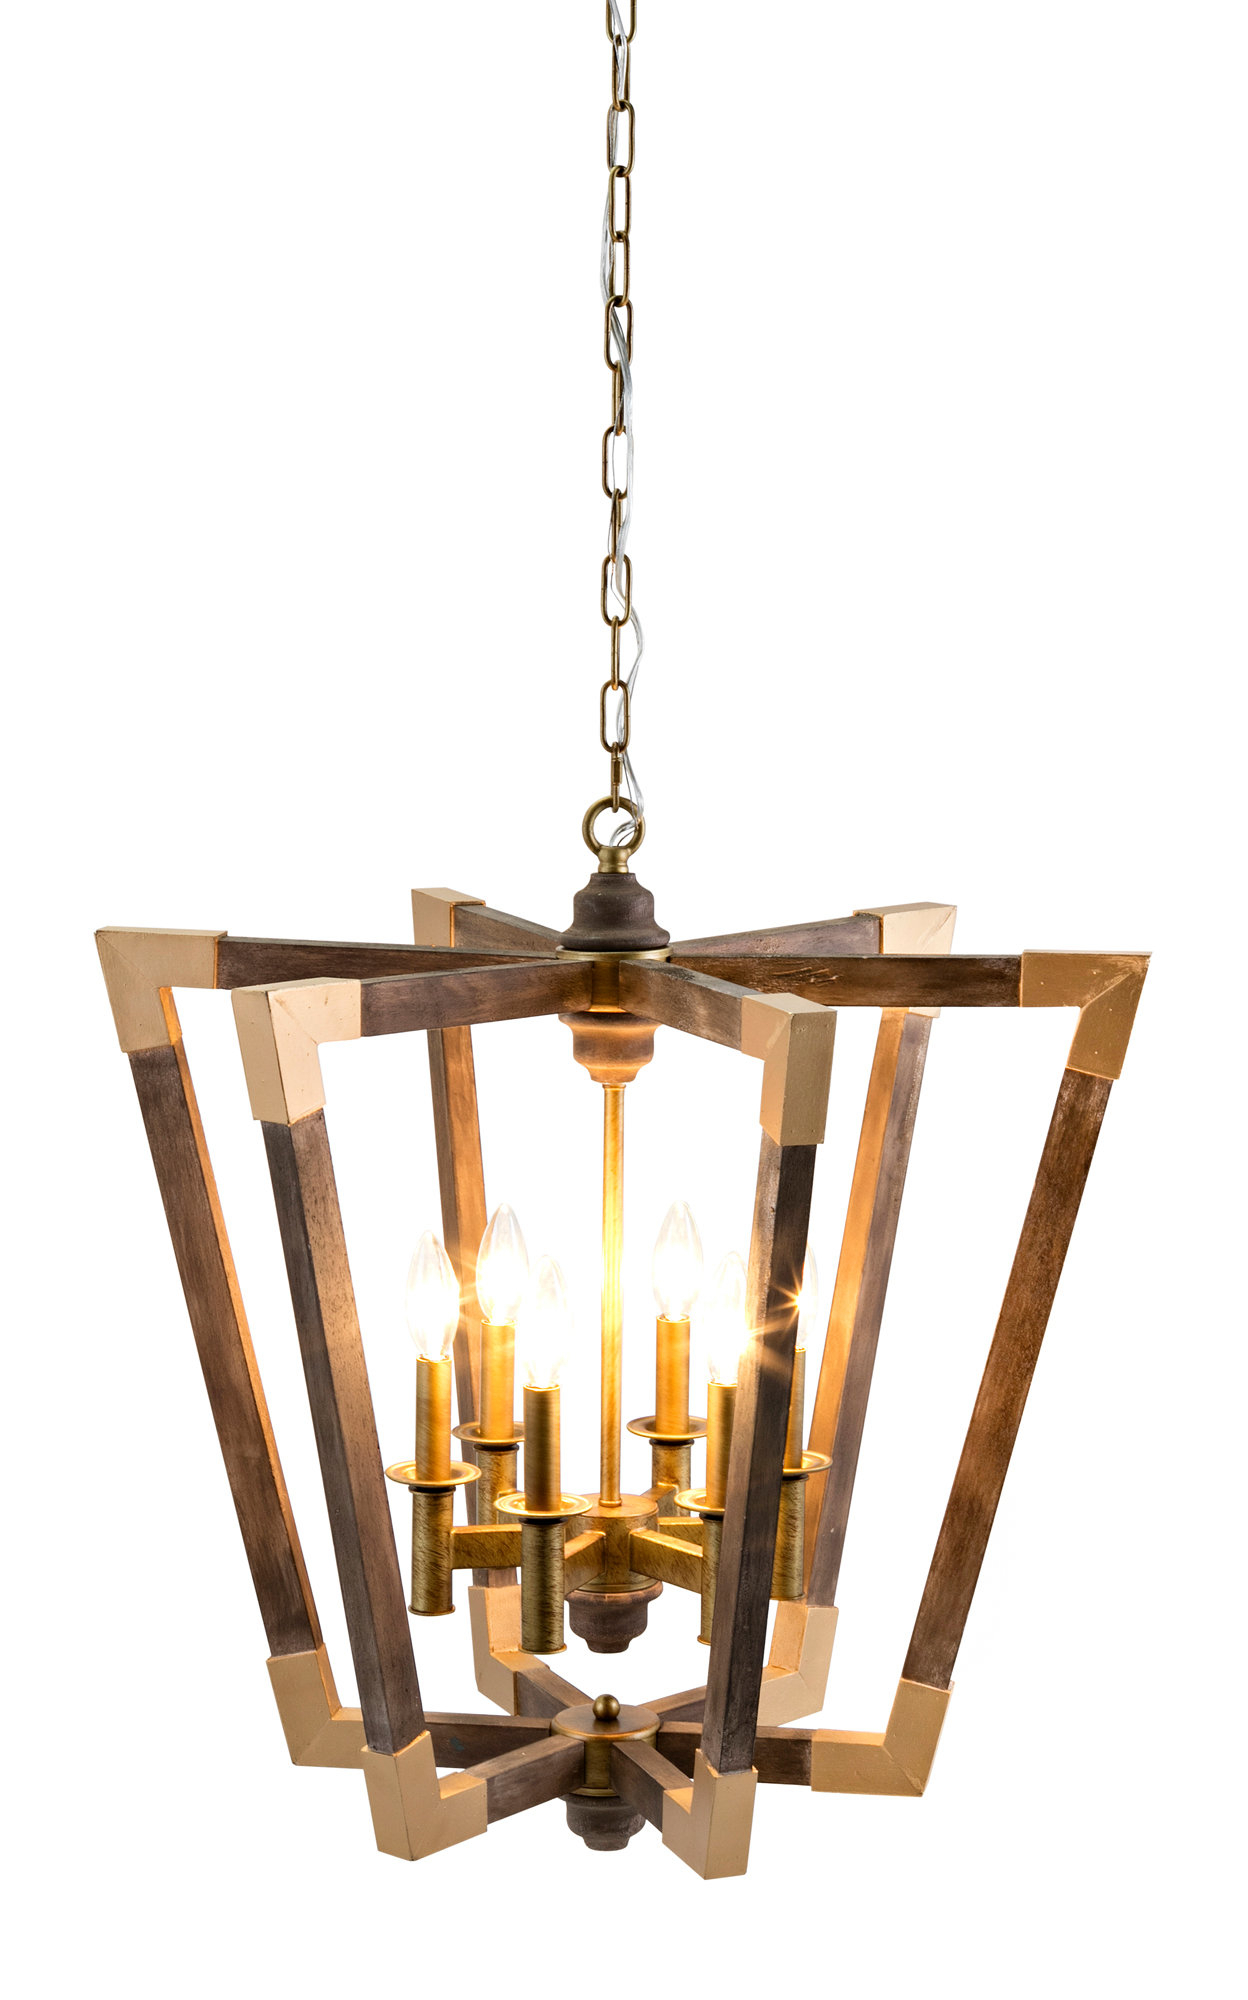 Widely Used Tiana 4 Light Geometric Chandeliers Throughout Westfall Wood 6 Light Geometric Chandelier (Gallery 20 of 20)